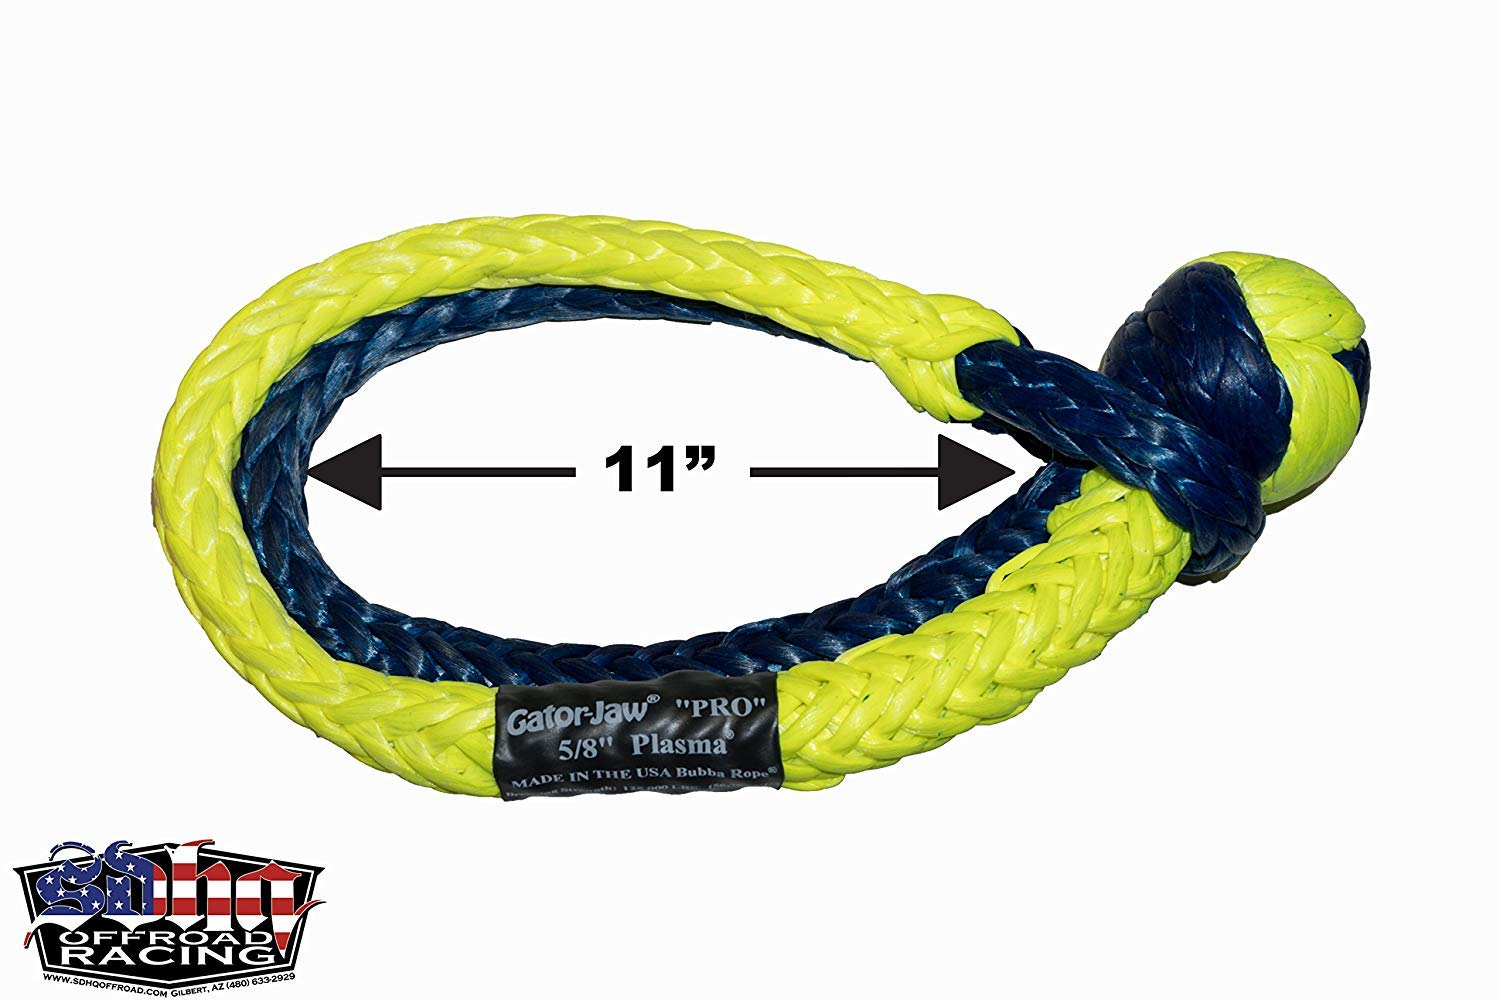 Bubba Rope Gator-Jaw Pro Synthetic Soft Shackle - Made in The USA (125,000lb Breaking Strength 5/8'' Mega Yellow & Blue) by Bubba Rope